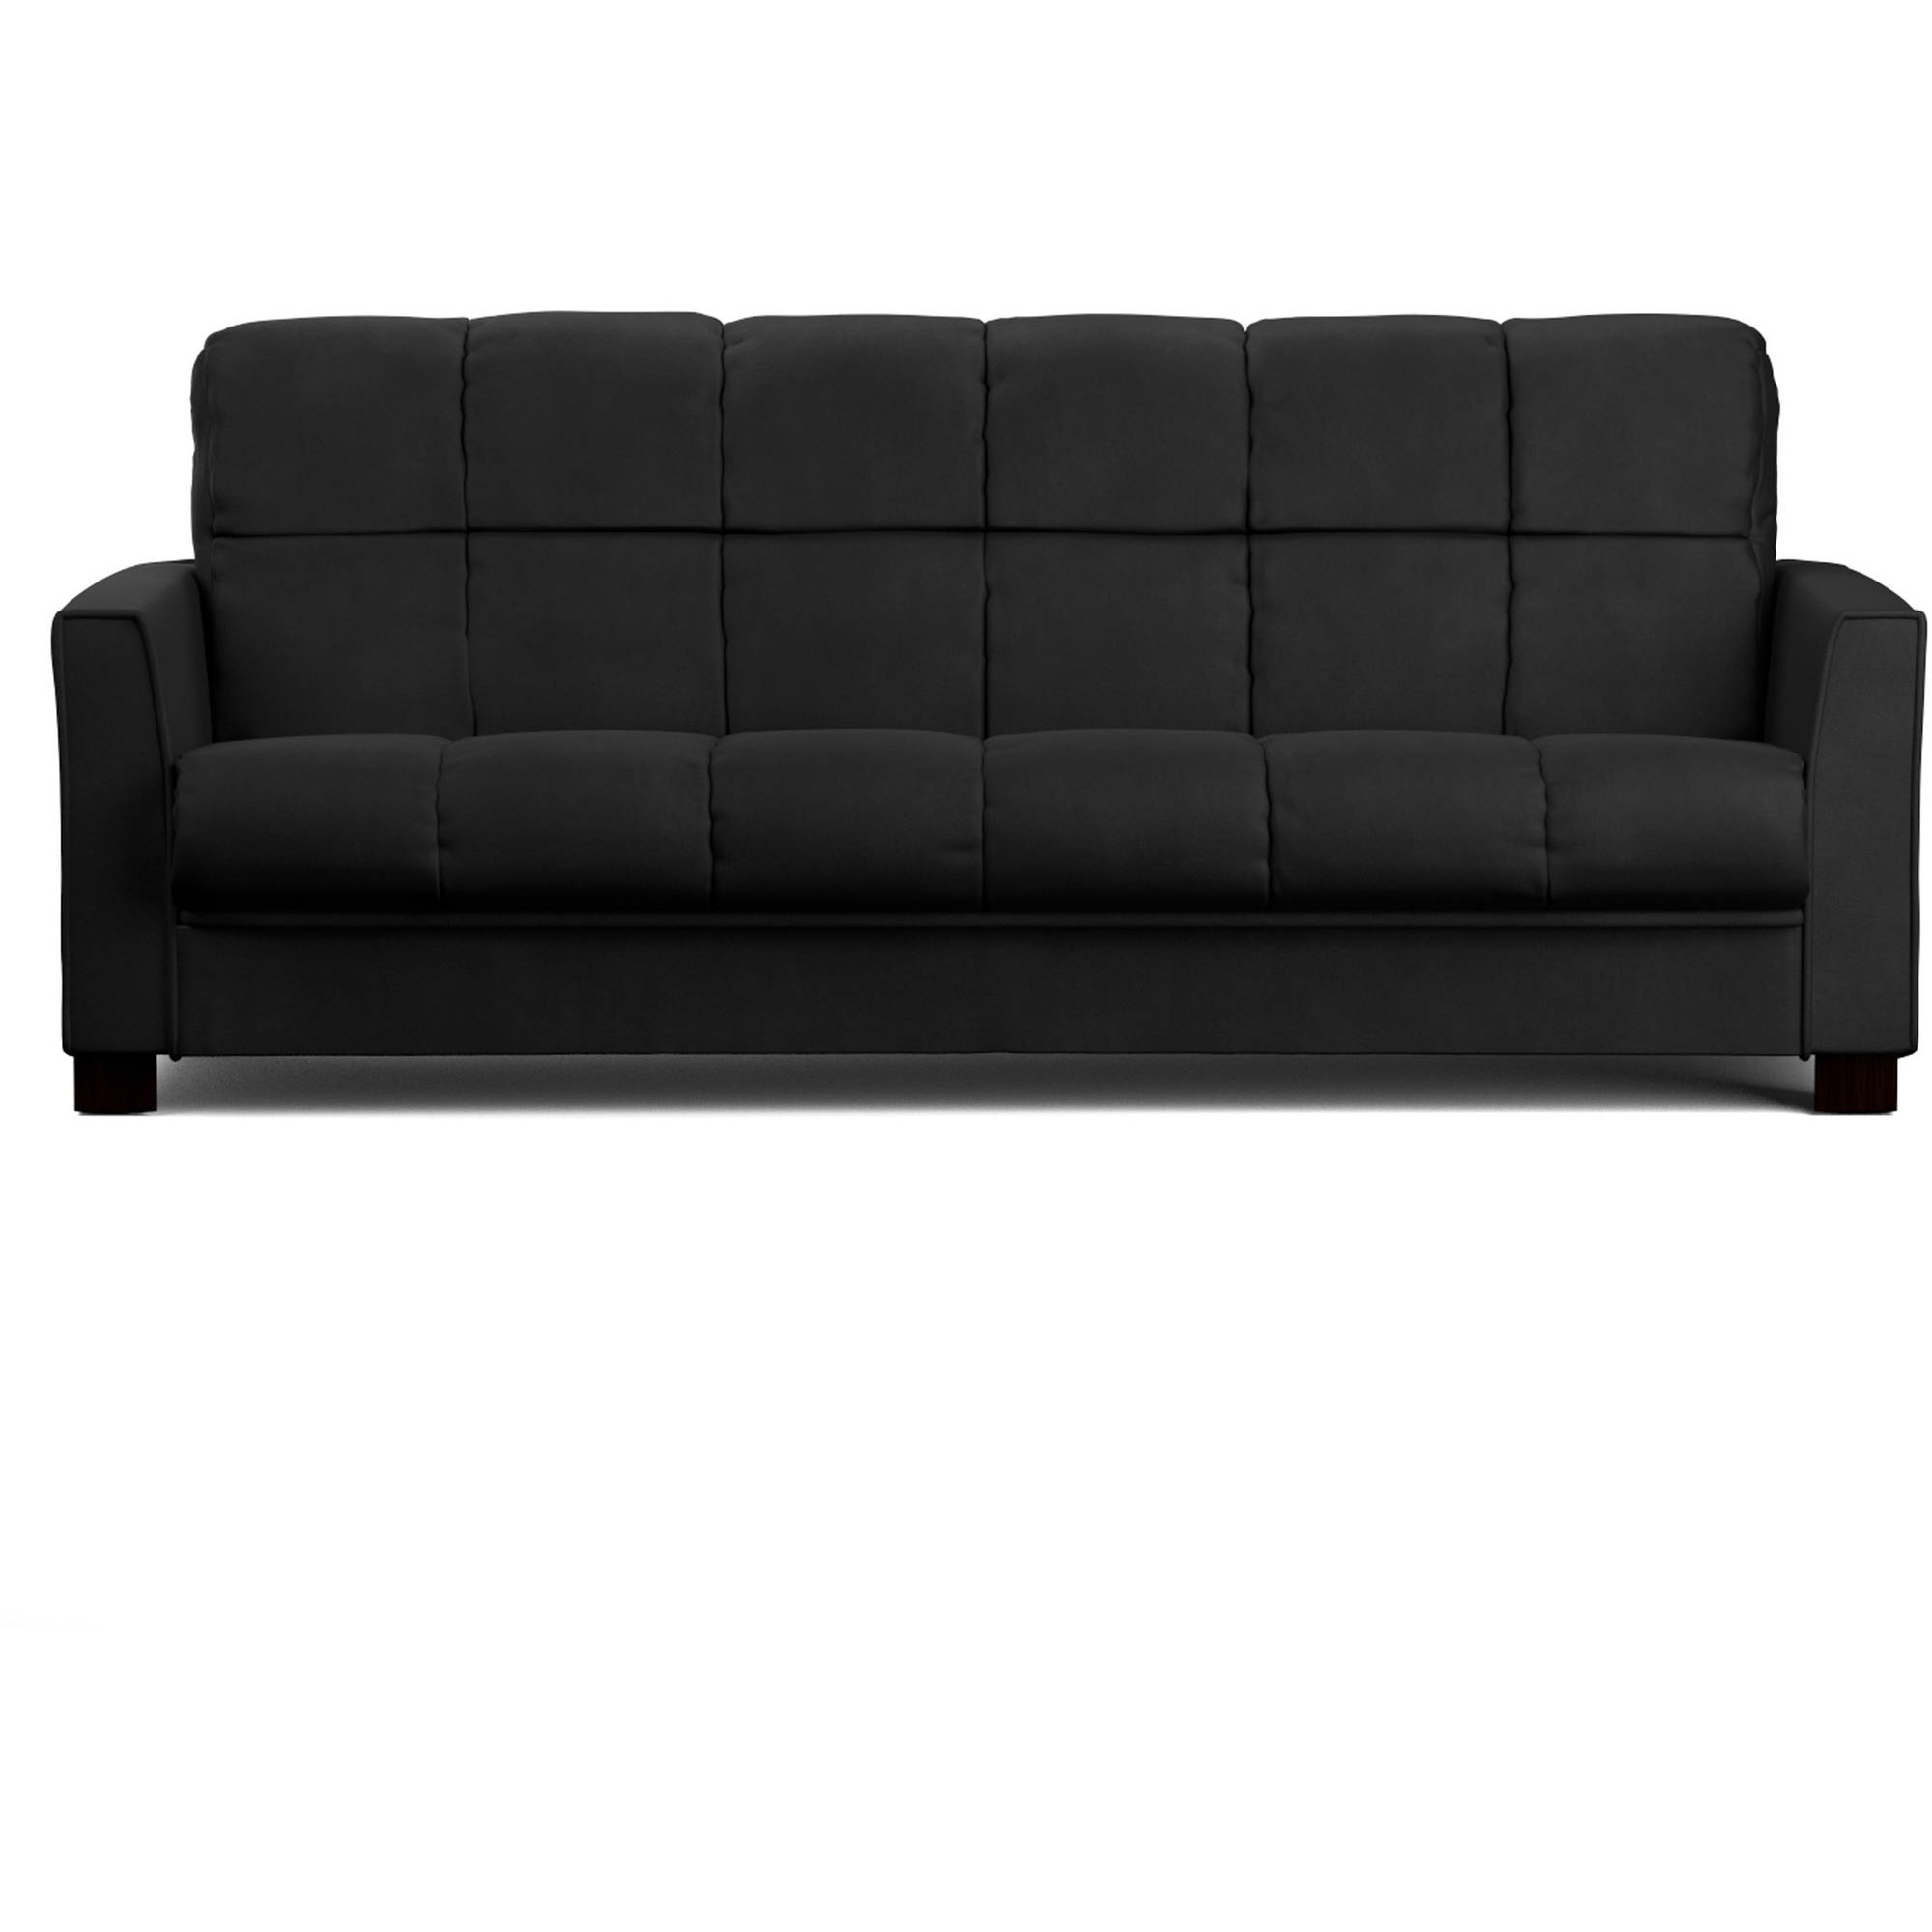 Baja Convert A Couch And Sofa Bed Black Scifihitscom